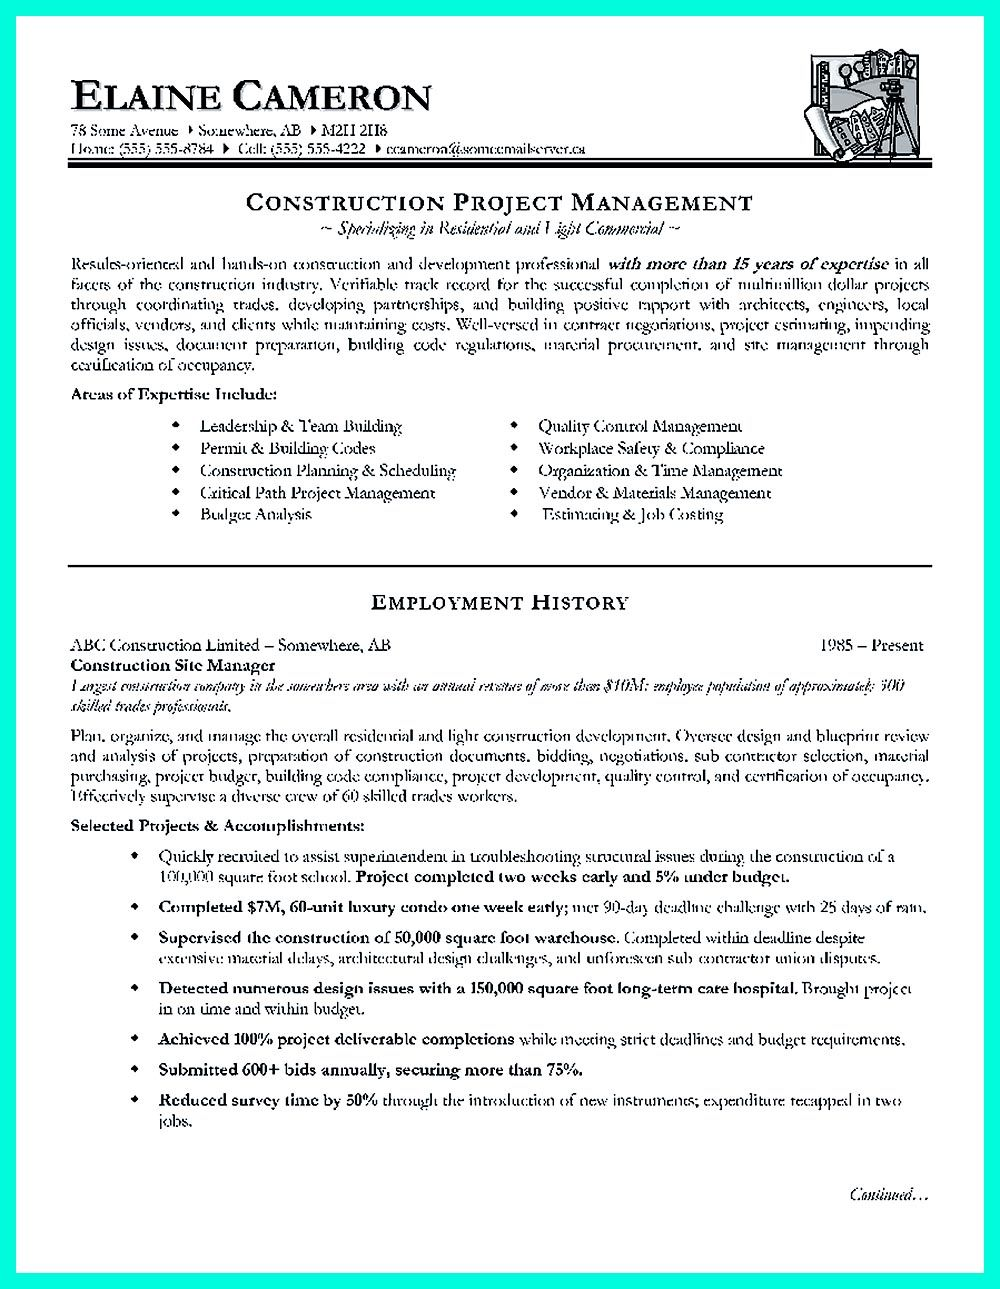 Construction management resume is designed for a professional who – Construction Manager Job Description